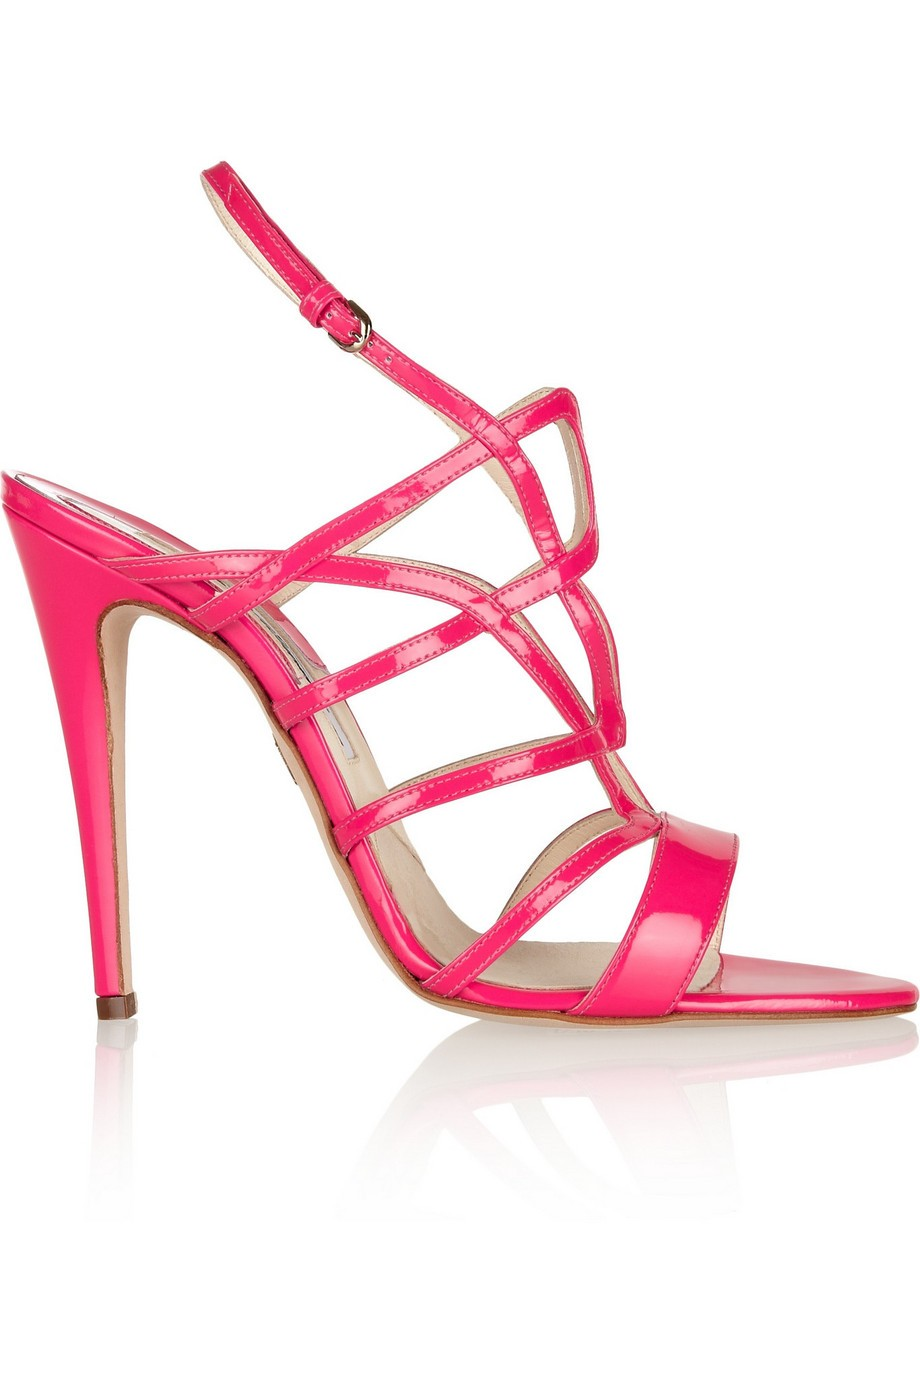 Gwen cutout patent-leather sandals